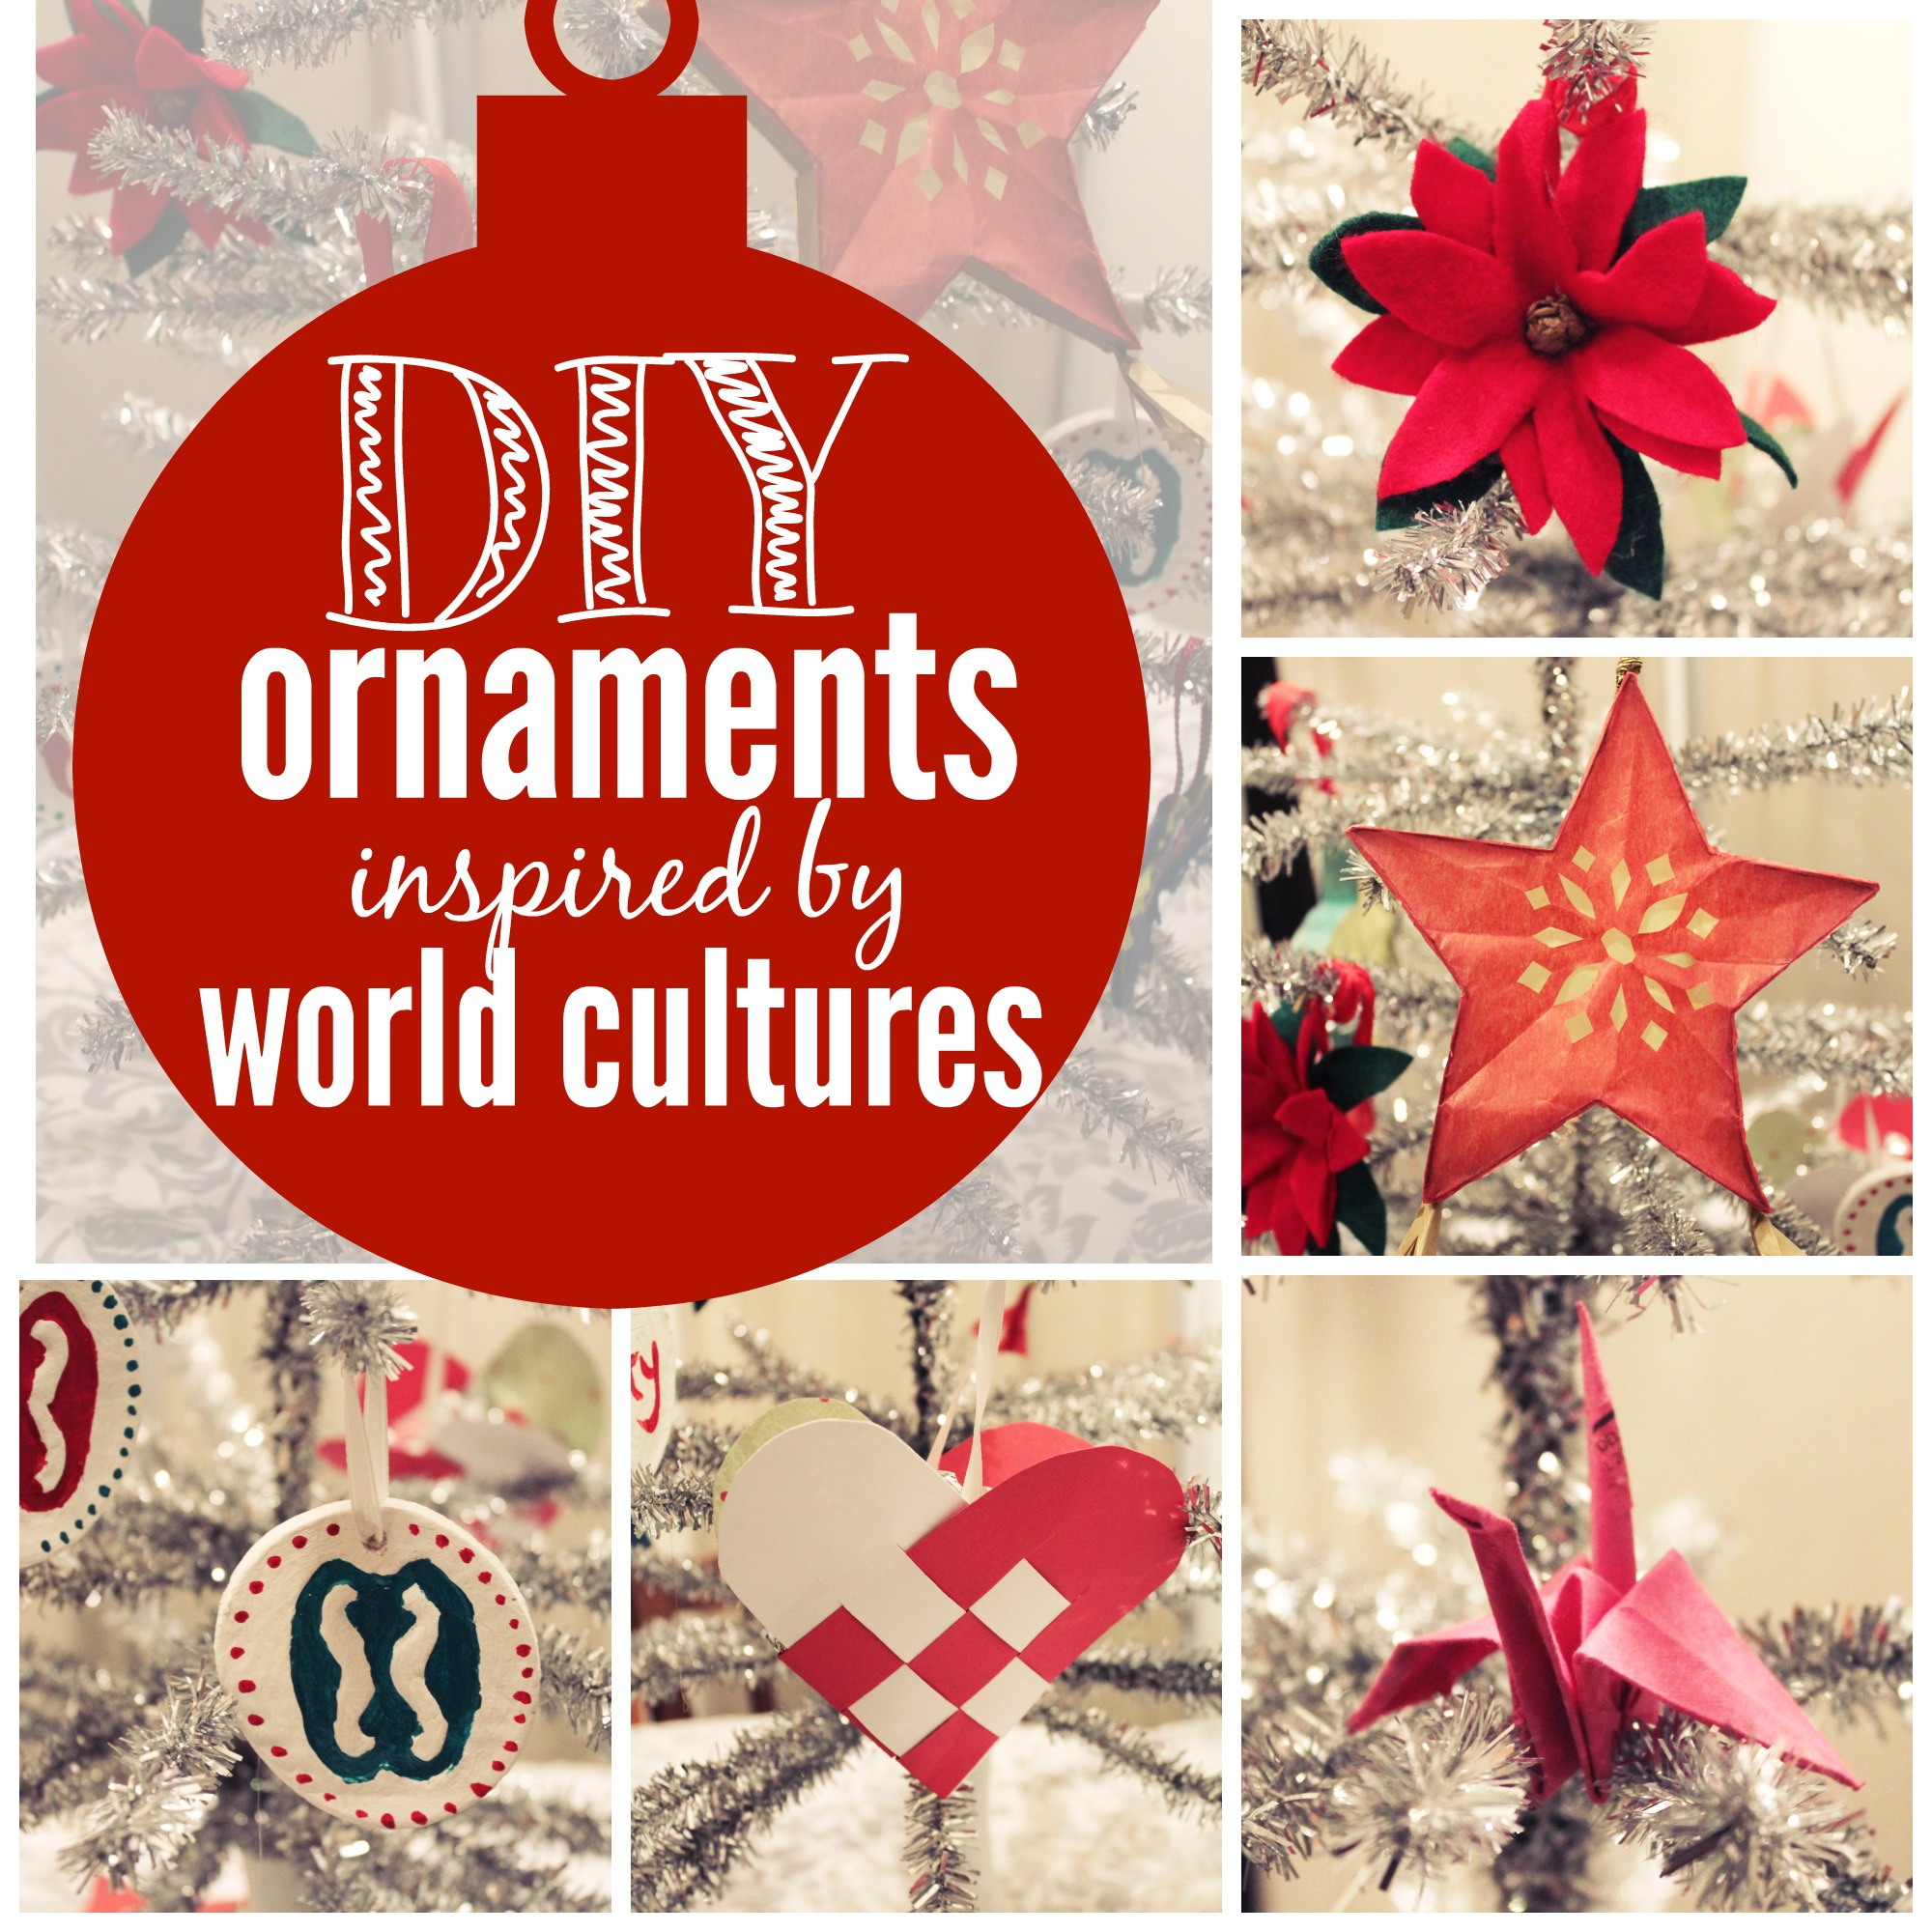 Diy christmas decorations 2014 - Multicultural Ornaments Collage